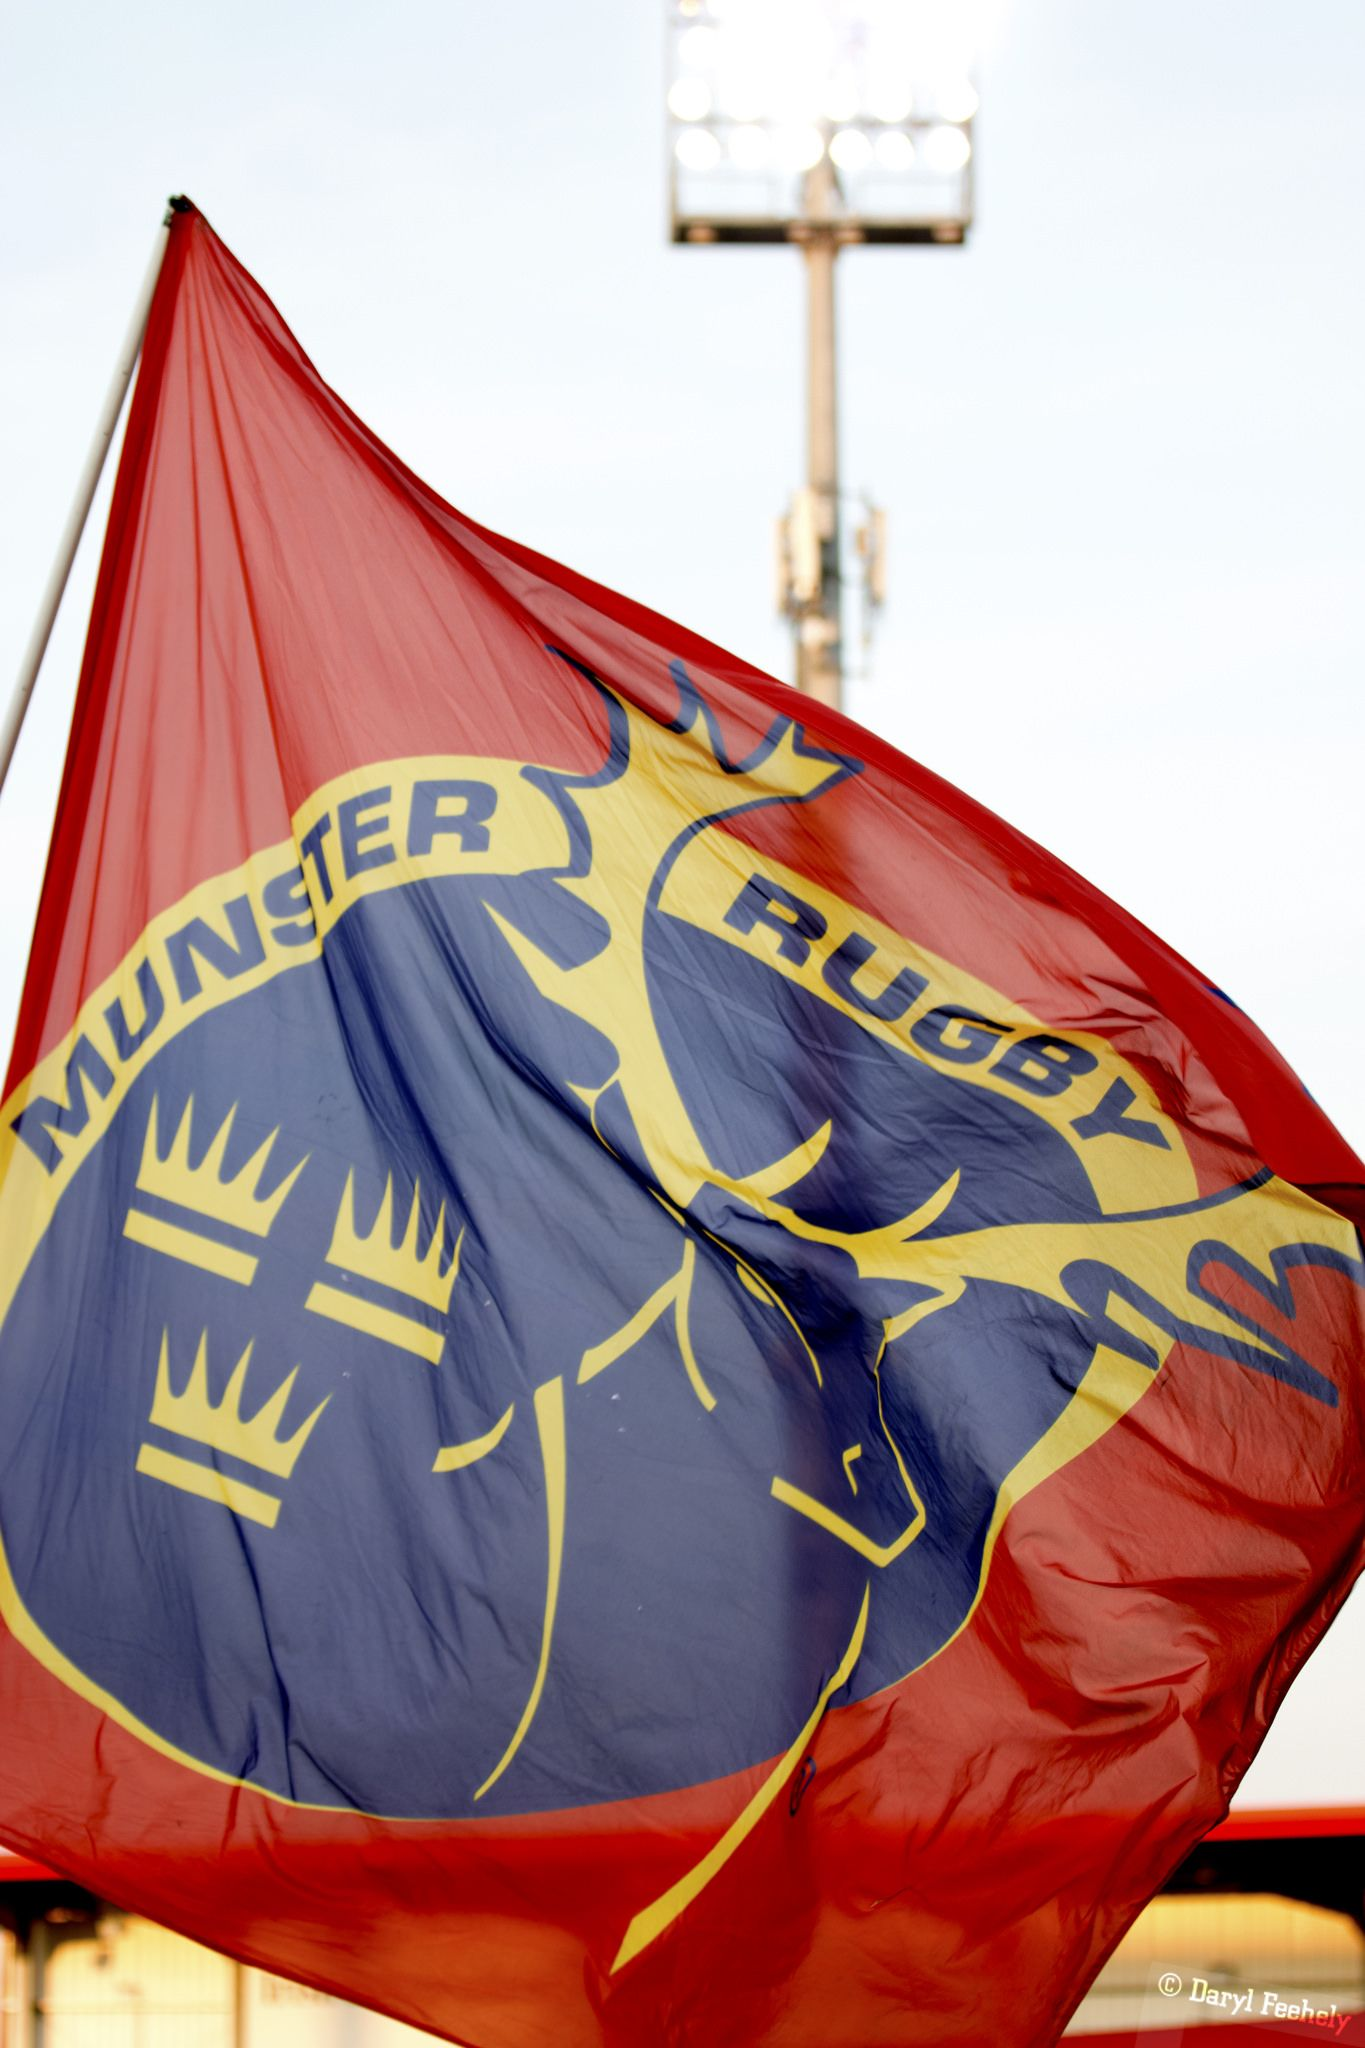 Munster Flag Munster Rugby Flag Munster